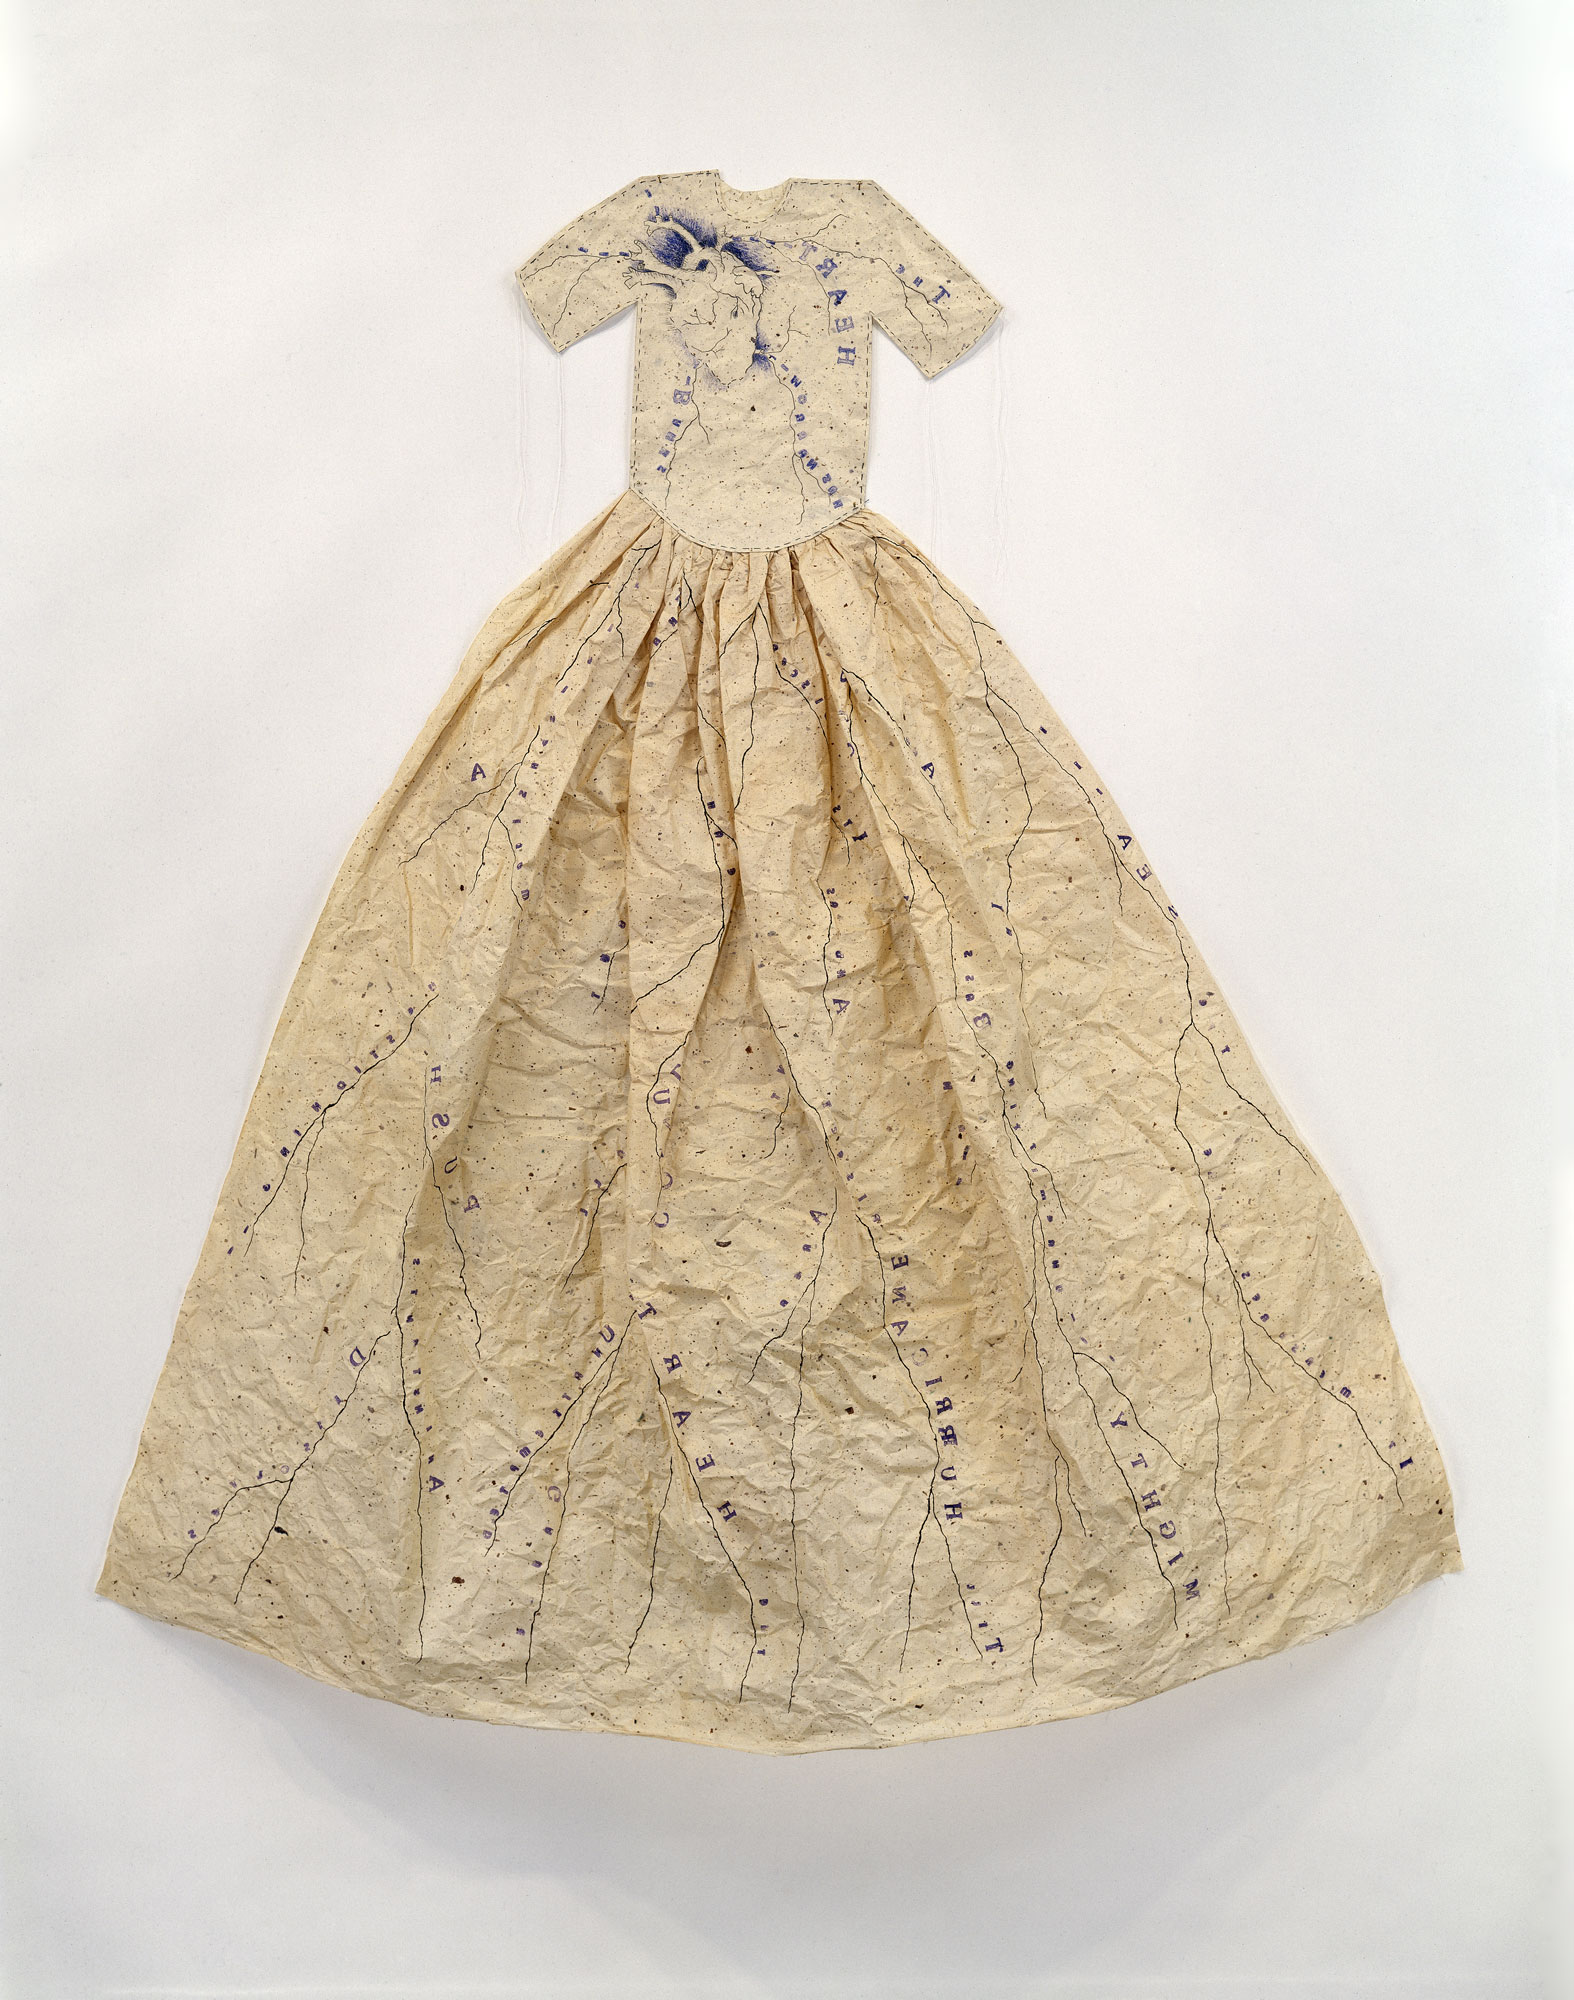 Poem Dress Of Circulation by Lesley Dill